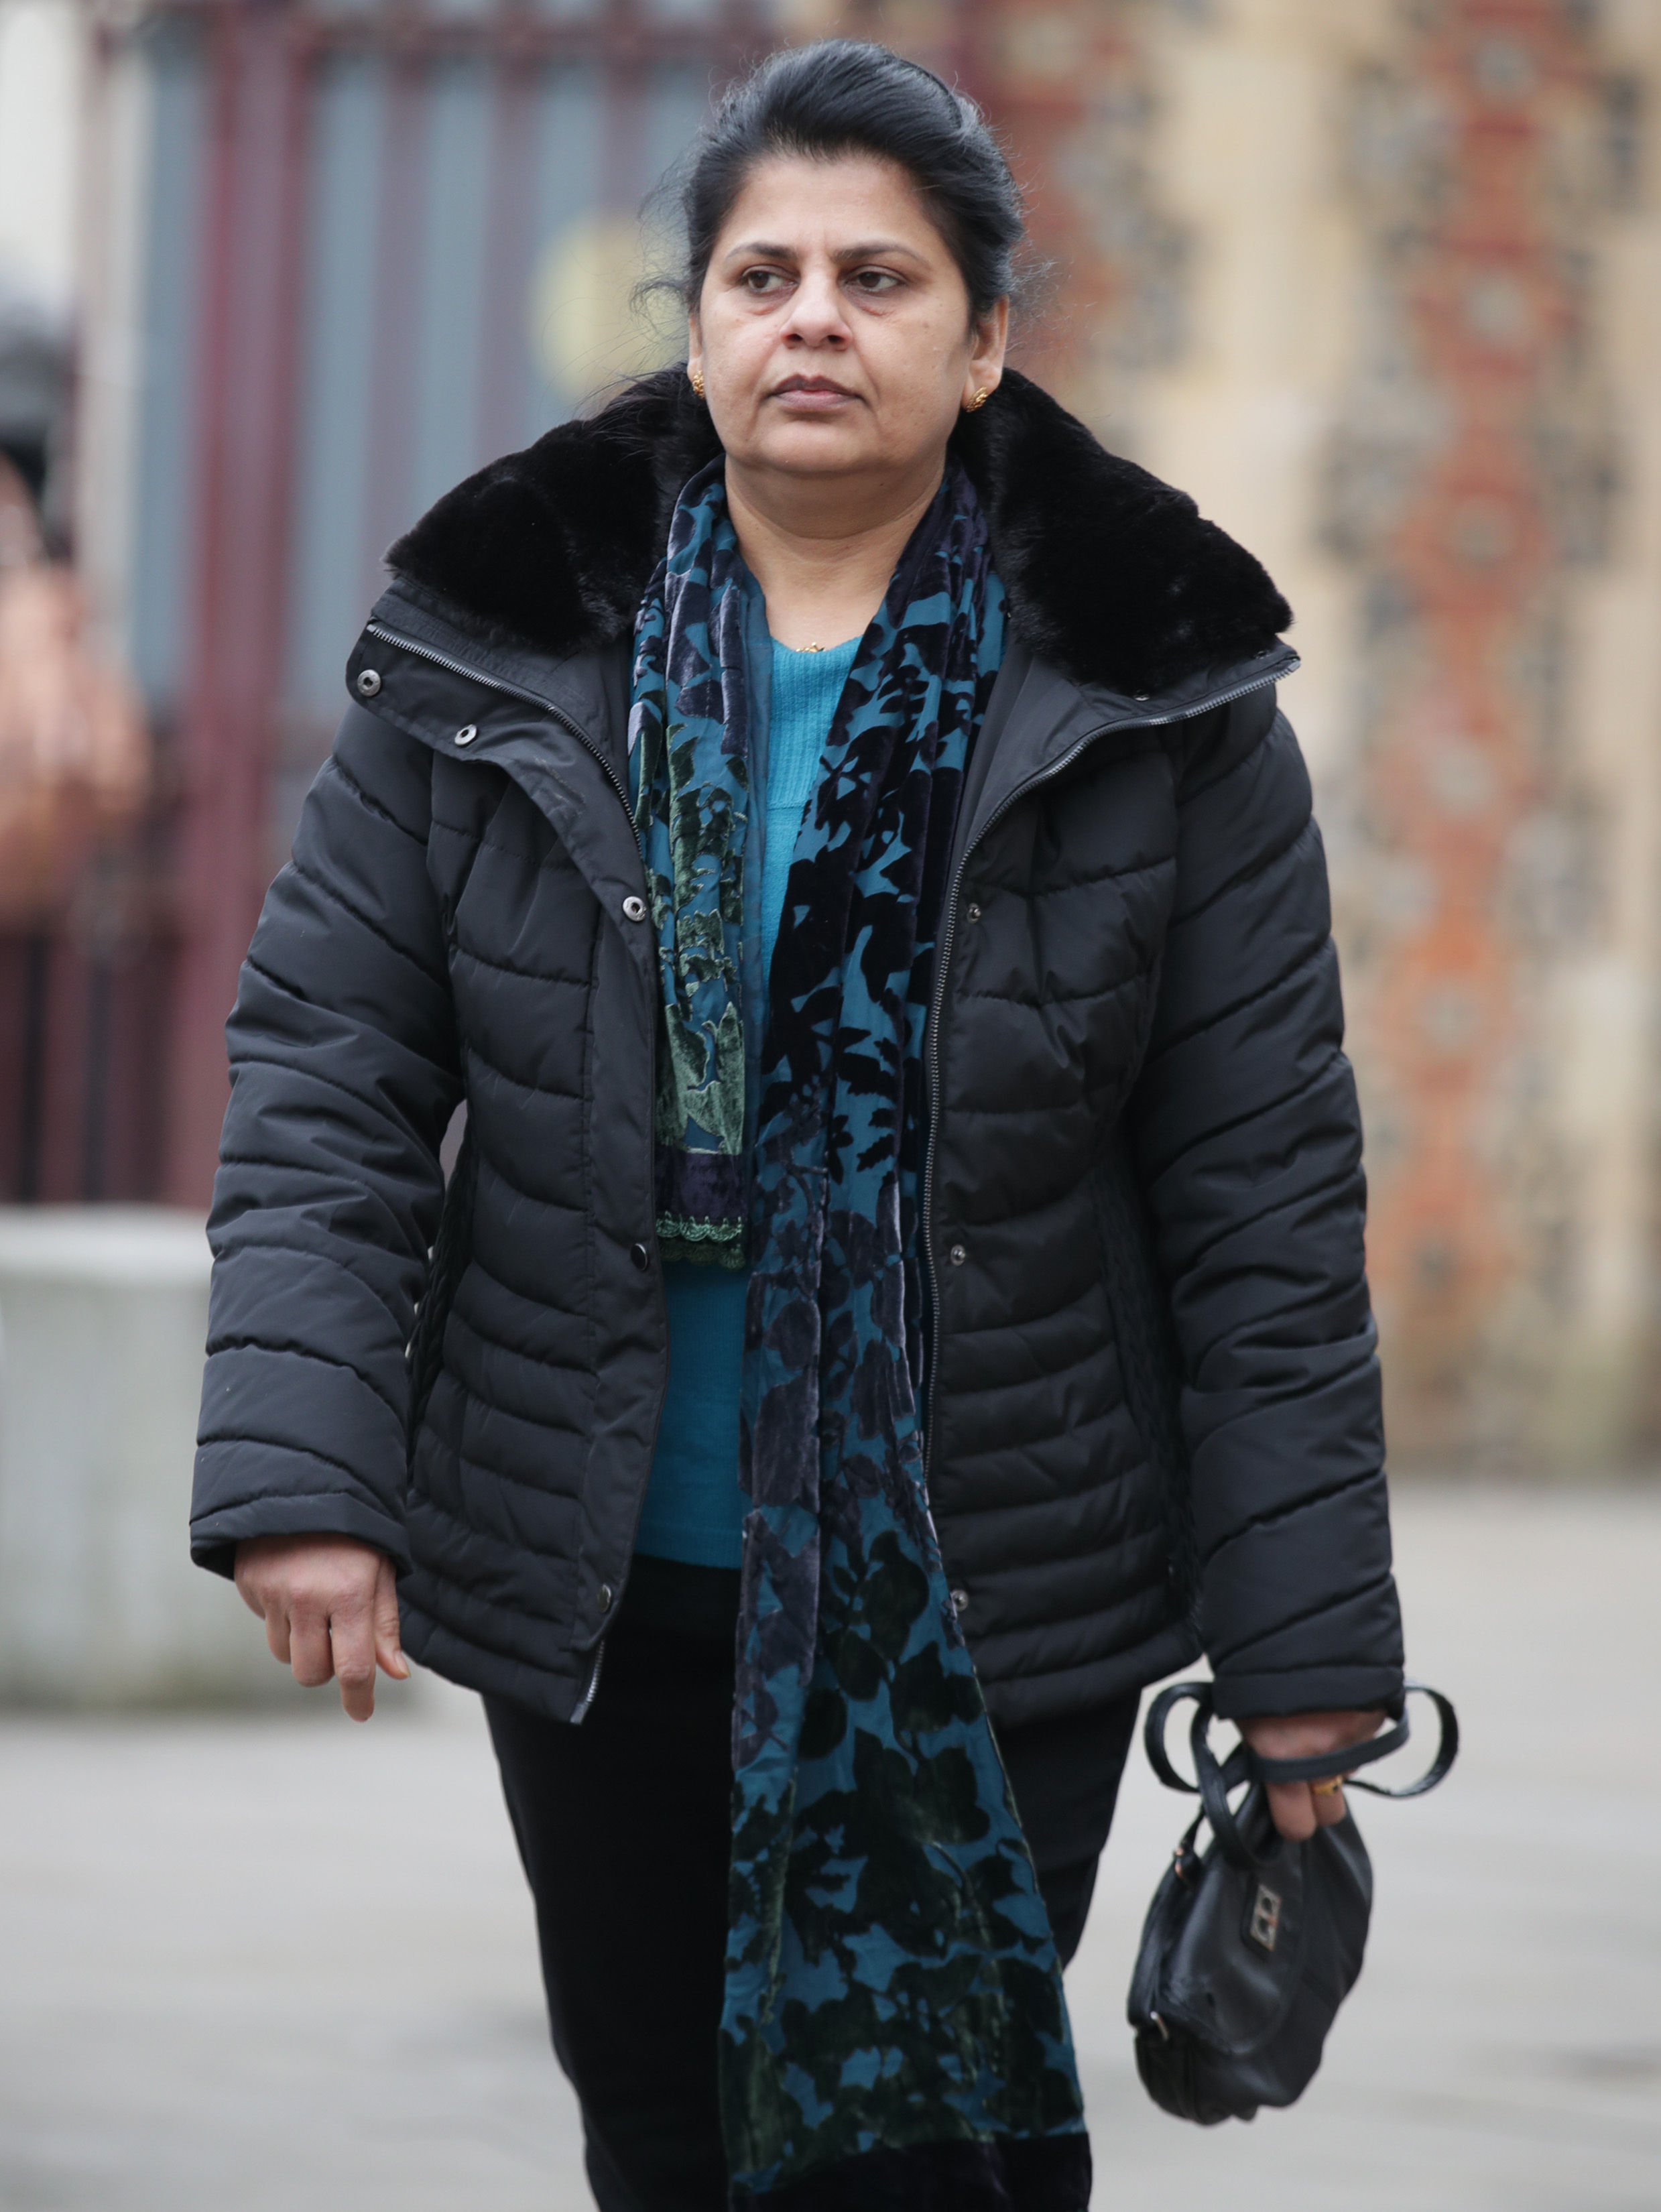 Ancy Joseph, the widow of Cyriac Joseph, arriving at Reading Crown Court (Yui Mok/PA)